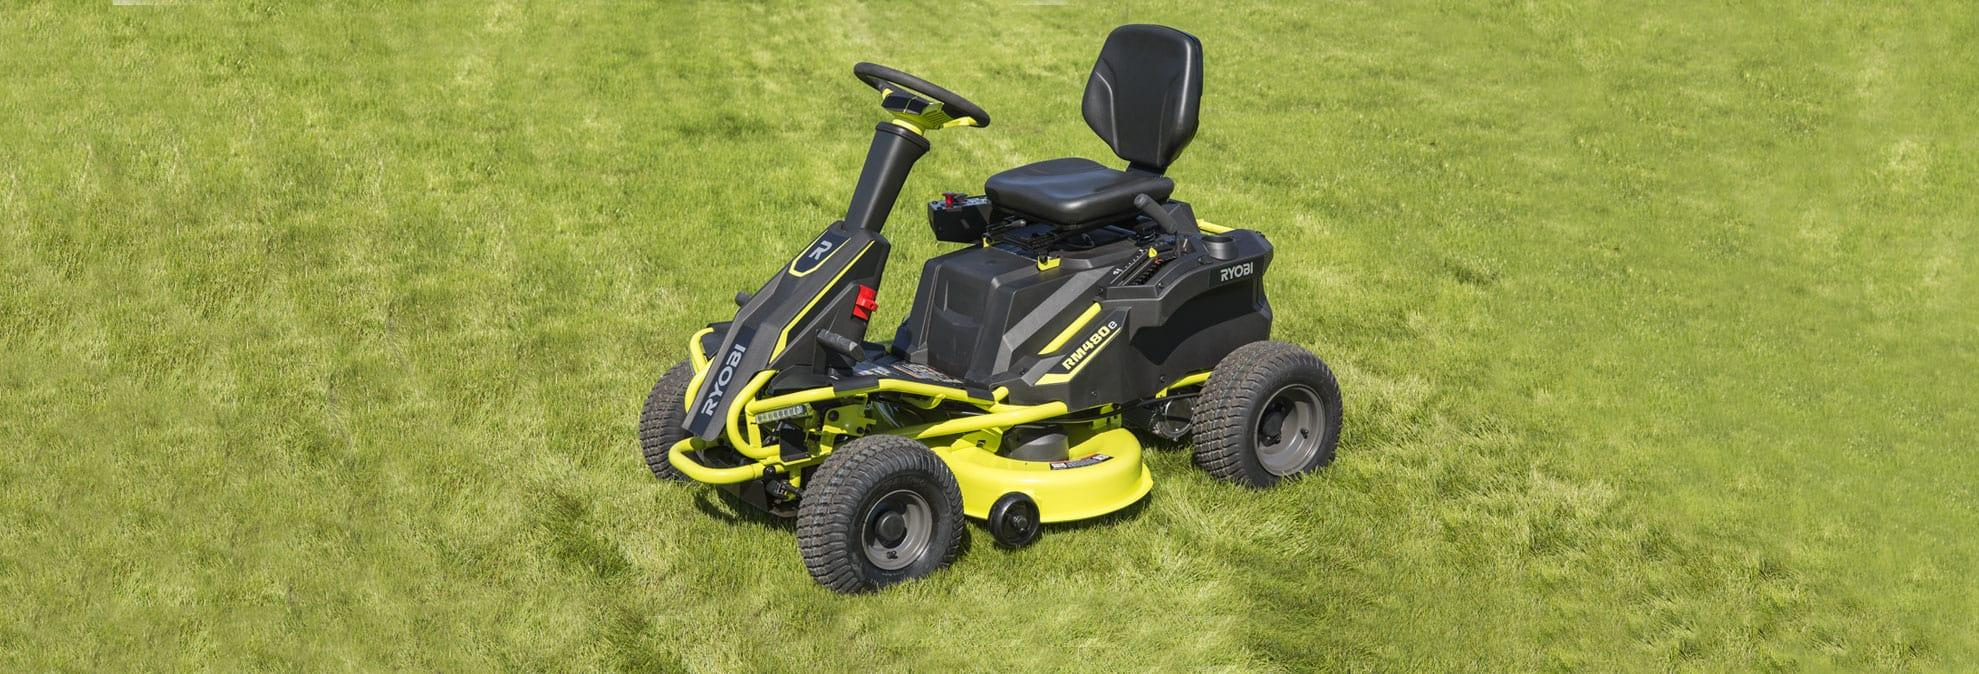 Ryobi R48110 Electric Riding Lawn Mower Is Worth A Look